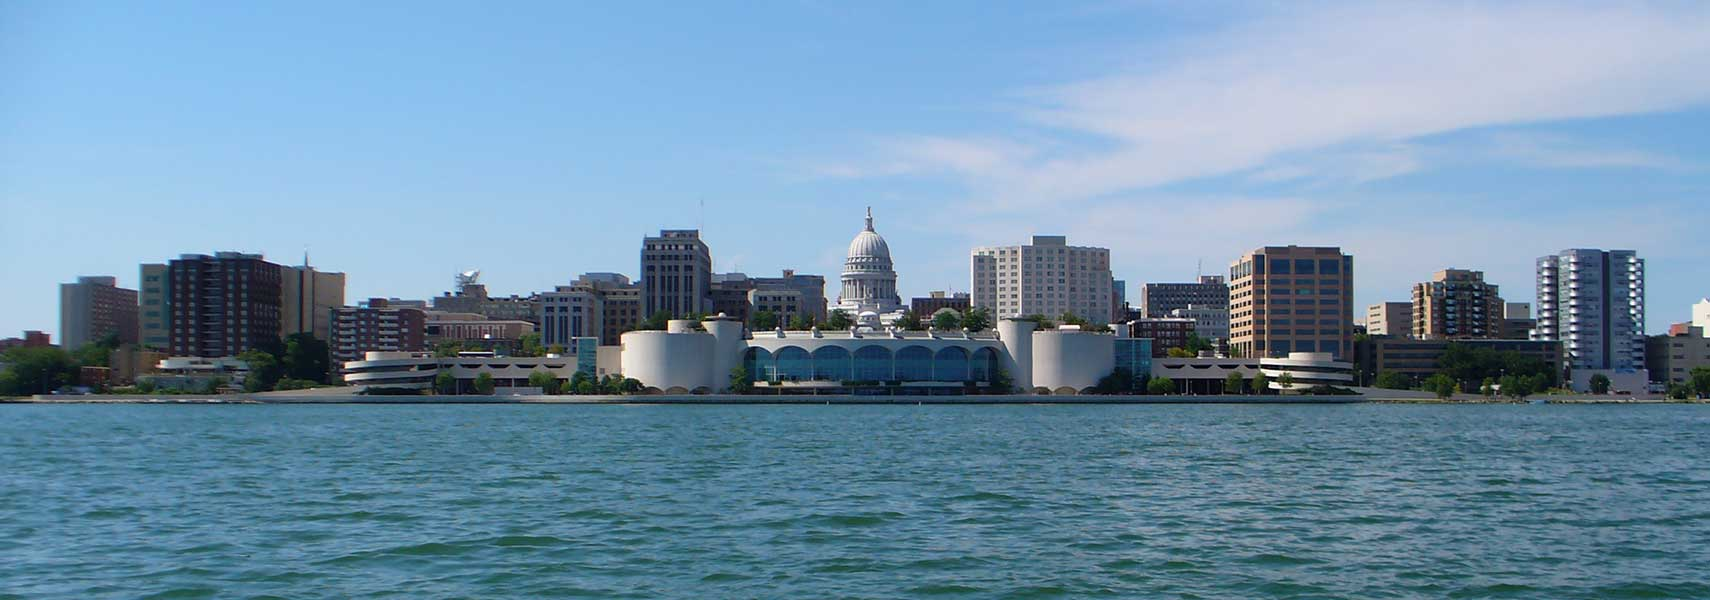 Google Map of Madison, Wisconsin, USA - Nations Online Project